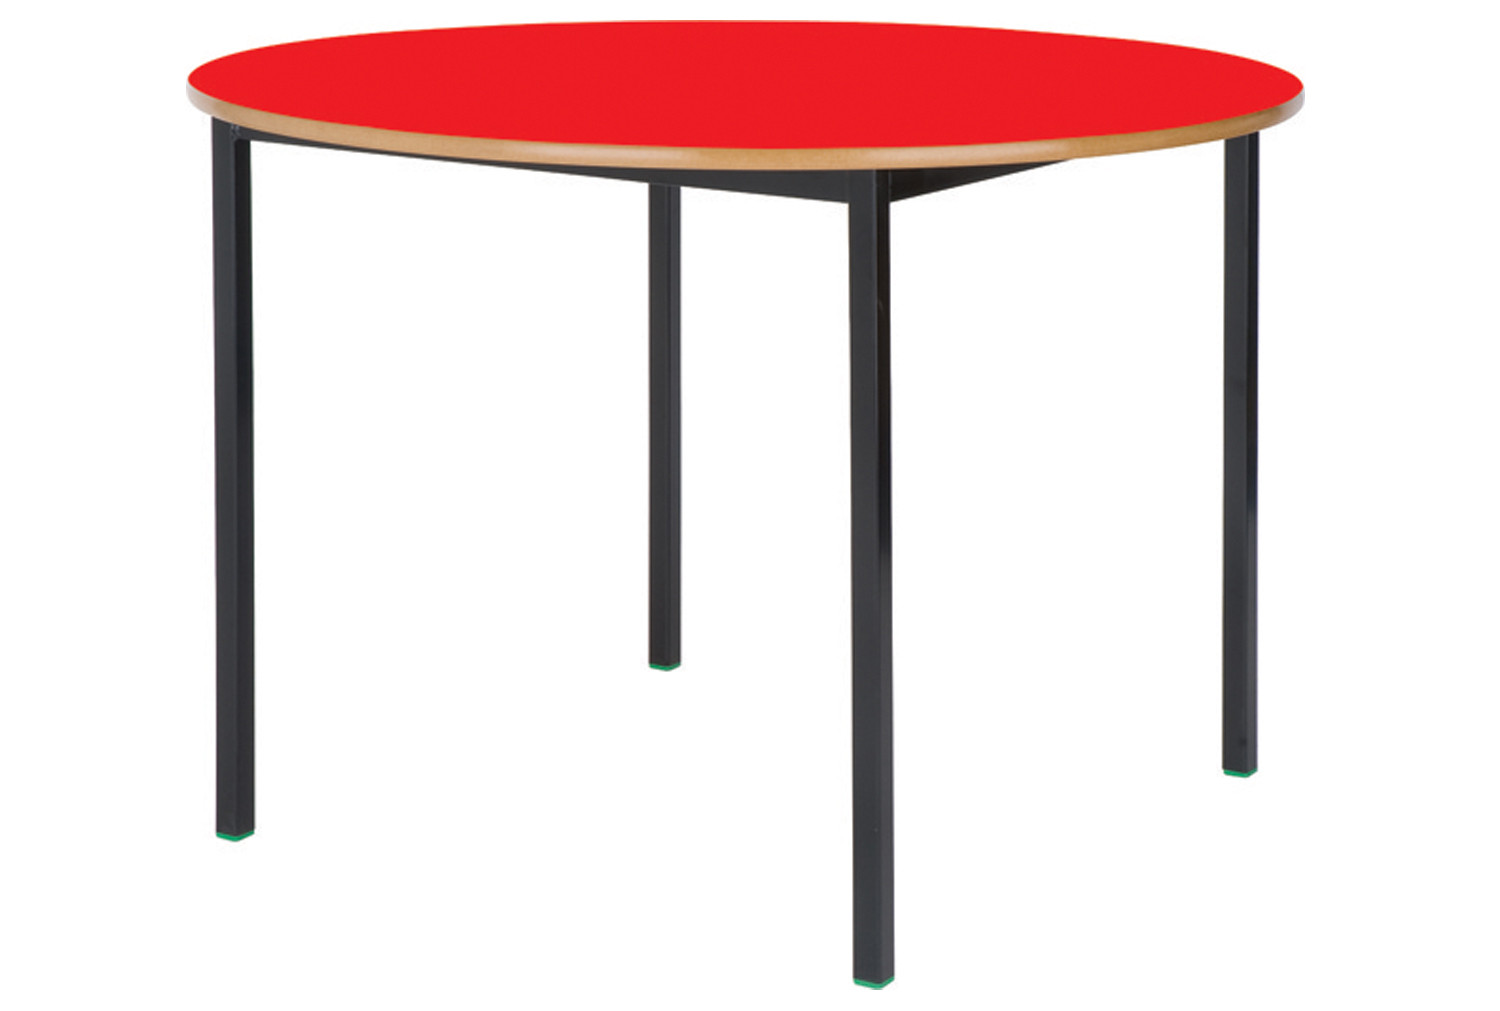 Circular Fully Welded Classroom Tables 6-8 Years